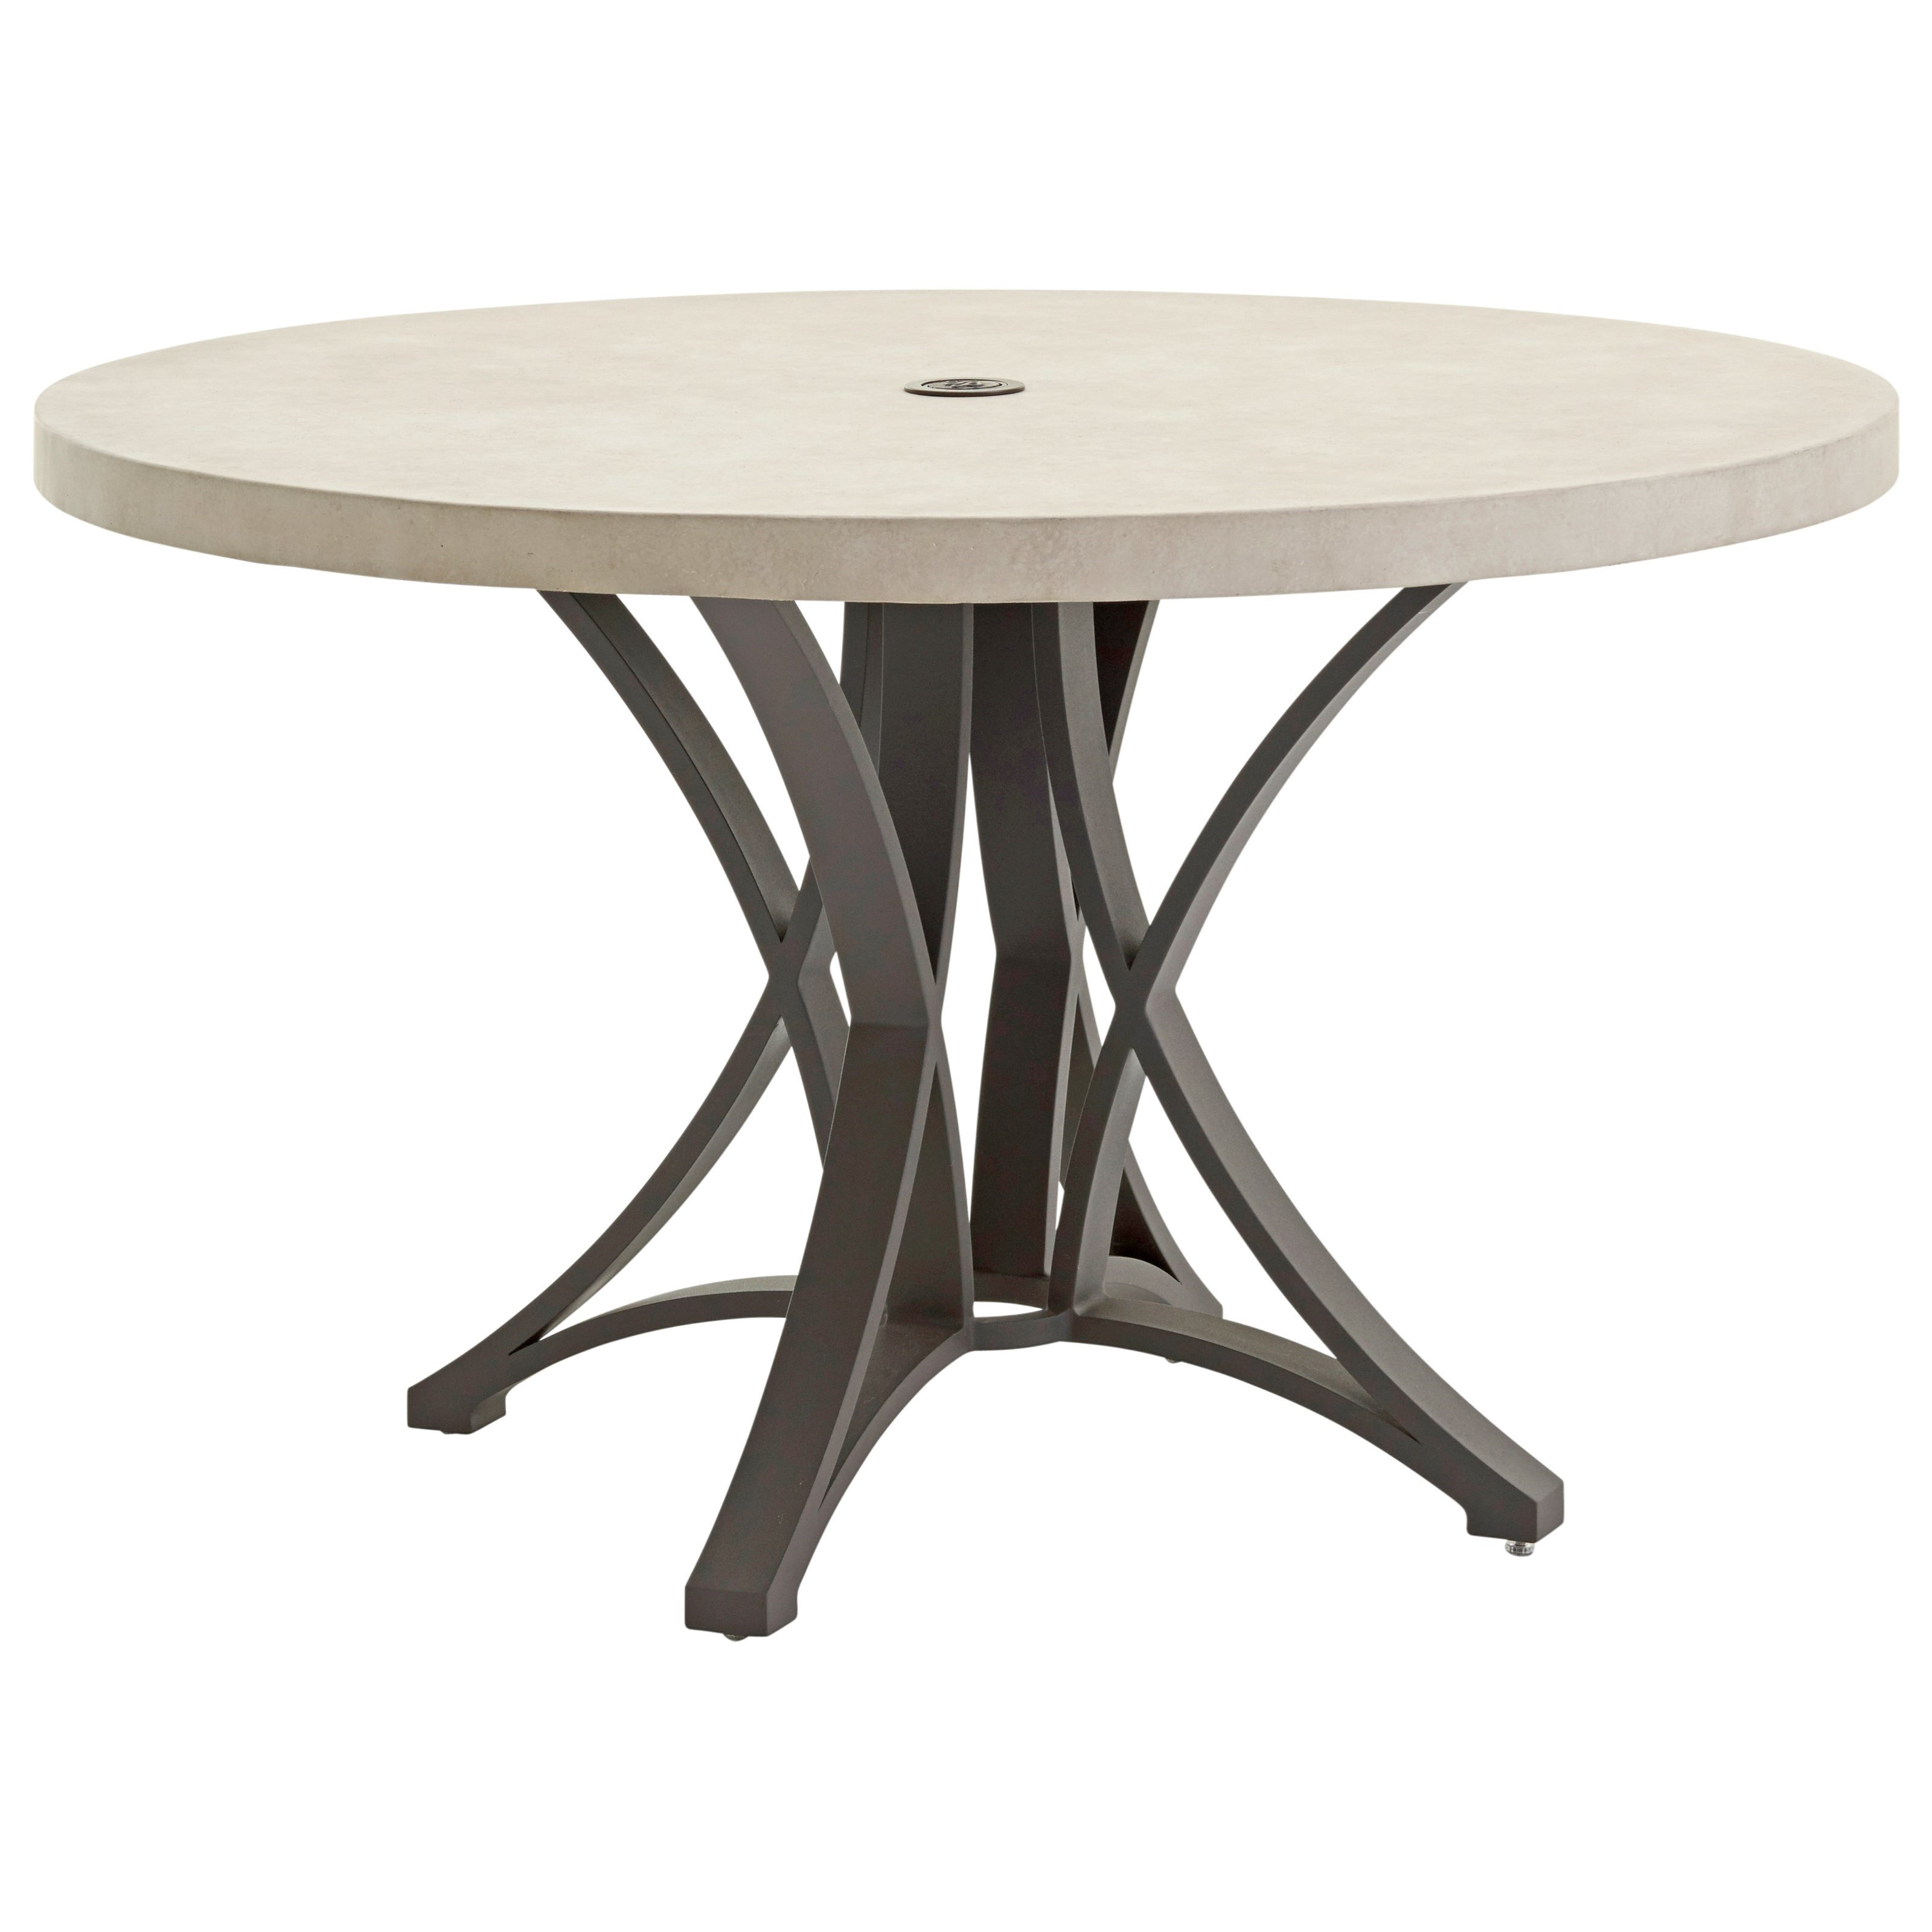 Cypress Point Ocean Terrace Outdoor Dining Table by Tommy Bahama Outdoor Living at Baer's Furniture